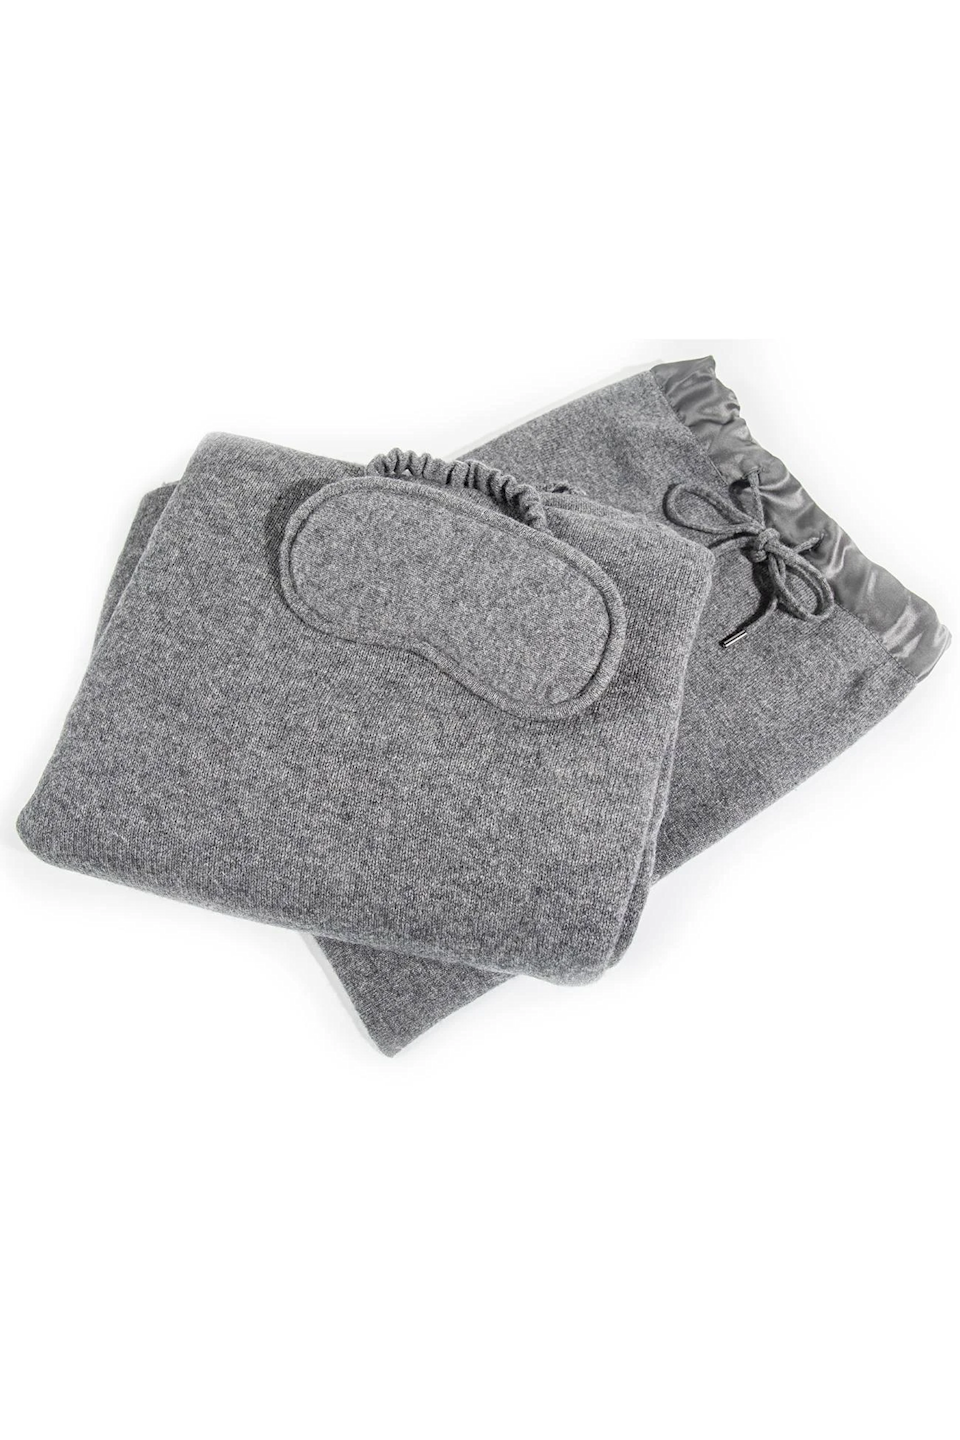 """<h2>Naked Cashmere Travel Set</h2><br>Someday, travel will be in the cards again. Make sure that your mom is (luxuriously) prepped and ready for when that day comes with this in-flight cashmere travel set. <br><br><strong>Naked Cashmere</strong> Travel Set, $, available at <a href=""""https://go.skimresources.com/?id=30283X879131&url=https%3A%2F%2Fwww.nakedcashmere.com%2Fproducts%2Ftravel-set"""" rel=""""nofollow noopener"""" target=""""_blank"""" data-ylk=""""slk:Naked Cashmere"""" class=""""link rapid-noclick-resp"""">Naked Cashmere</a>"""